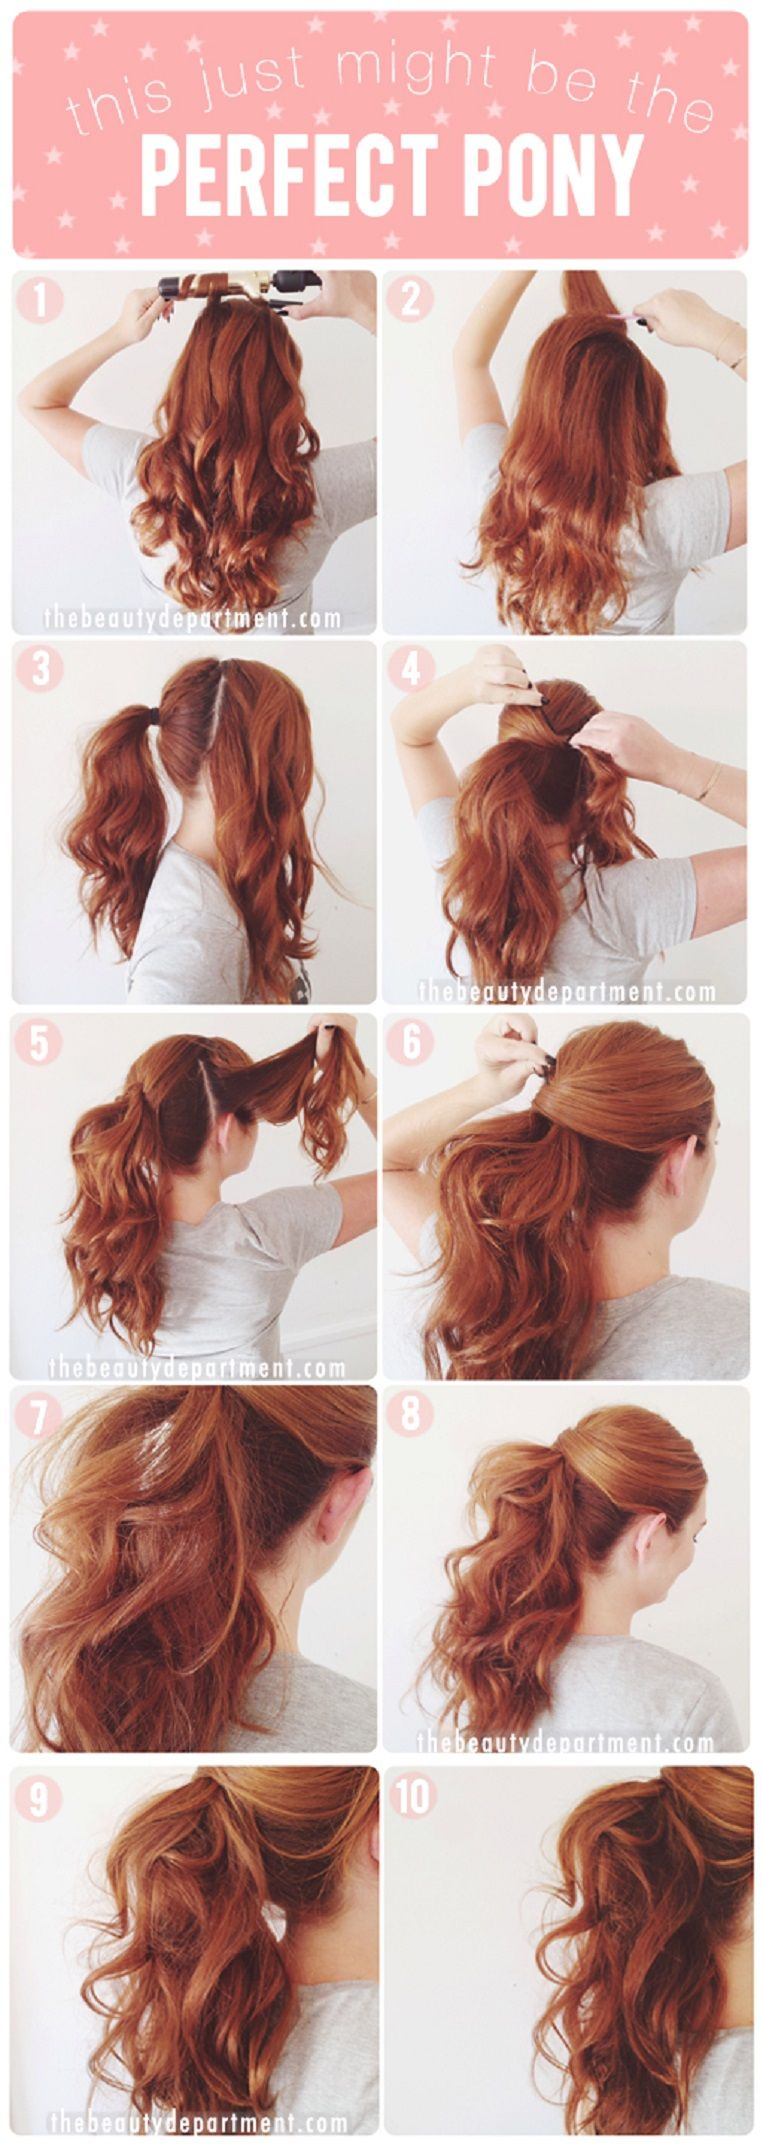 ponytail hairstyles discover latest ponytail ideas now